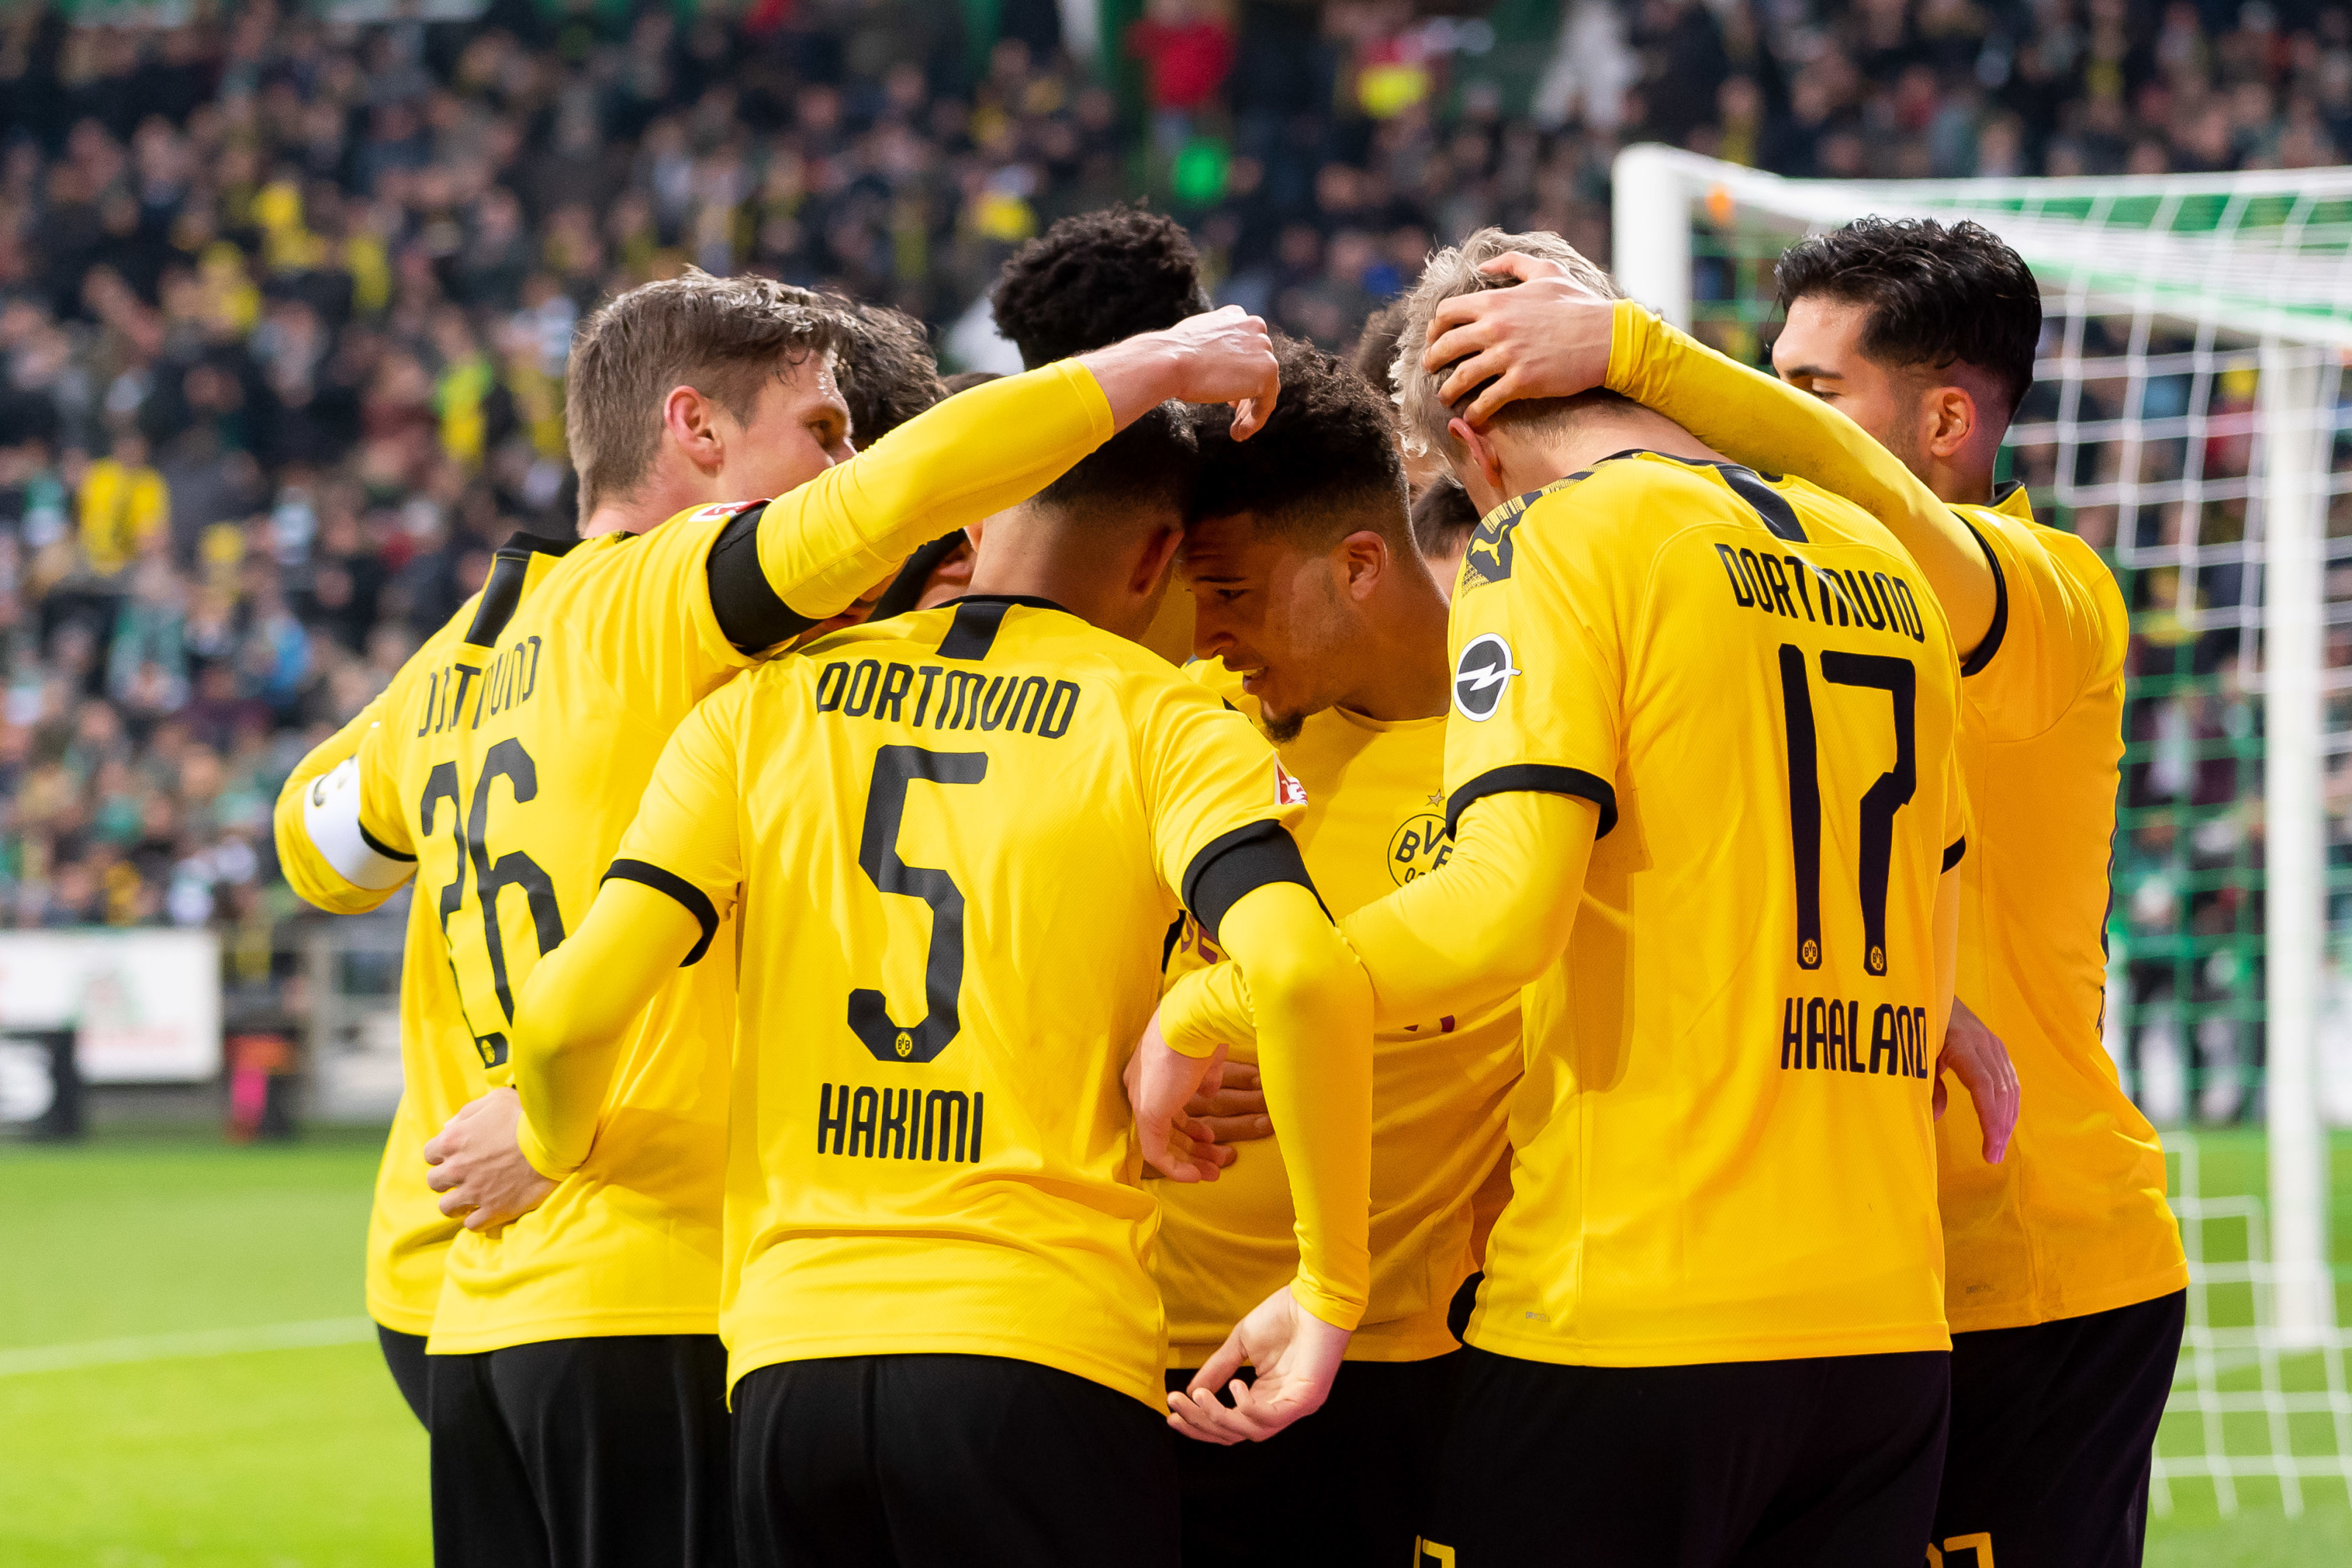 Borussia Dortmund pick up three points but so do other league leaders